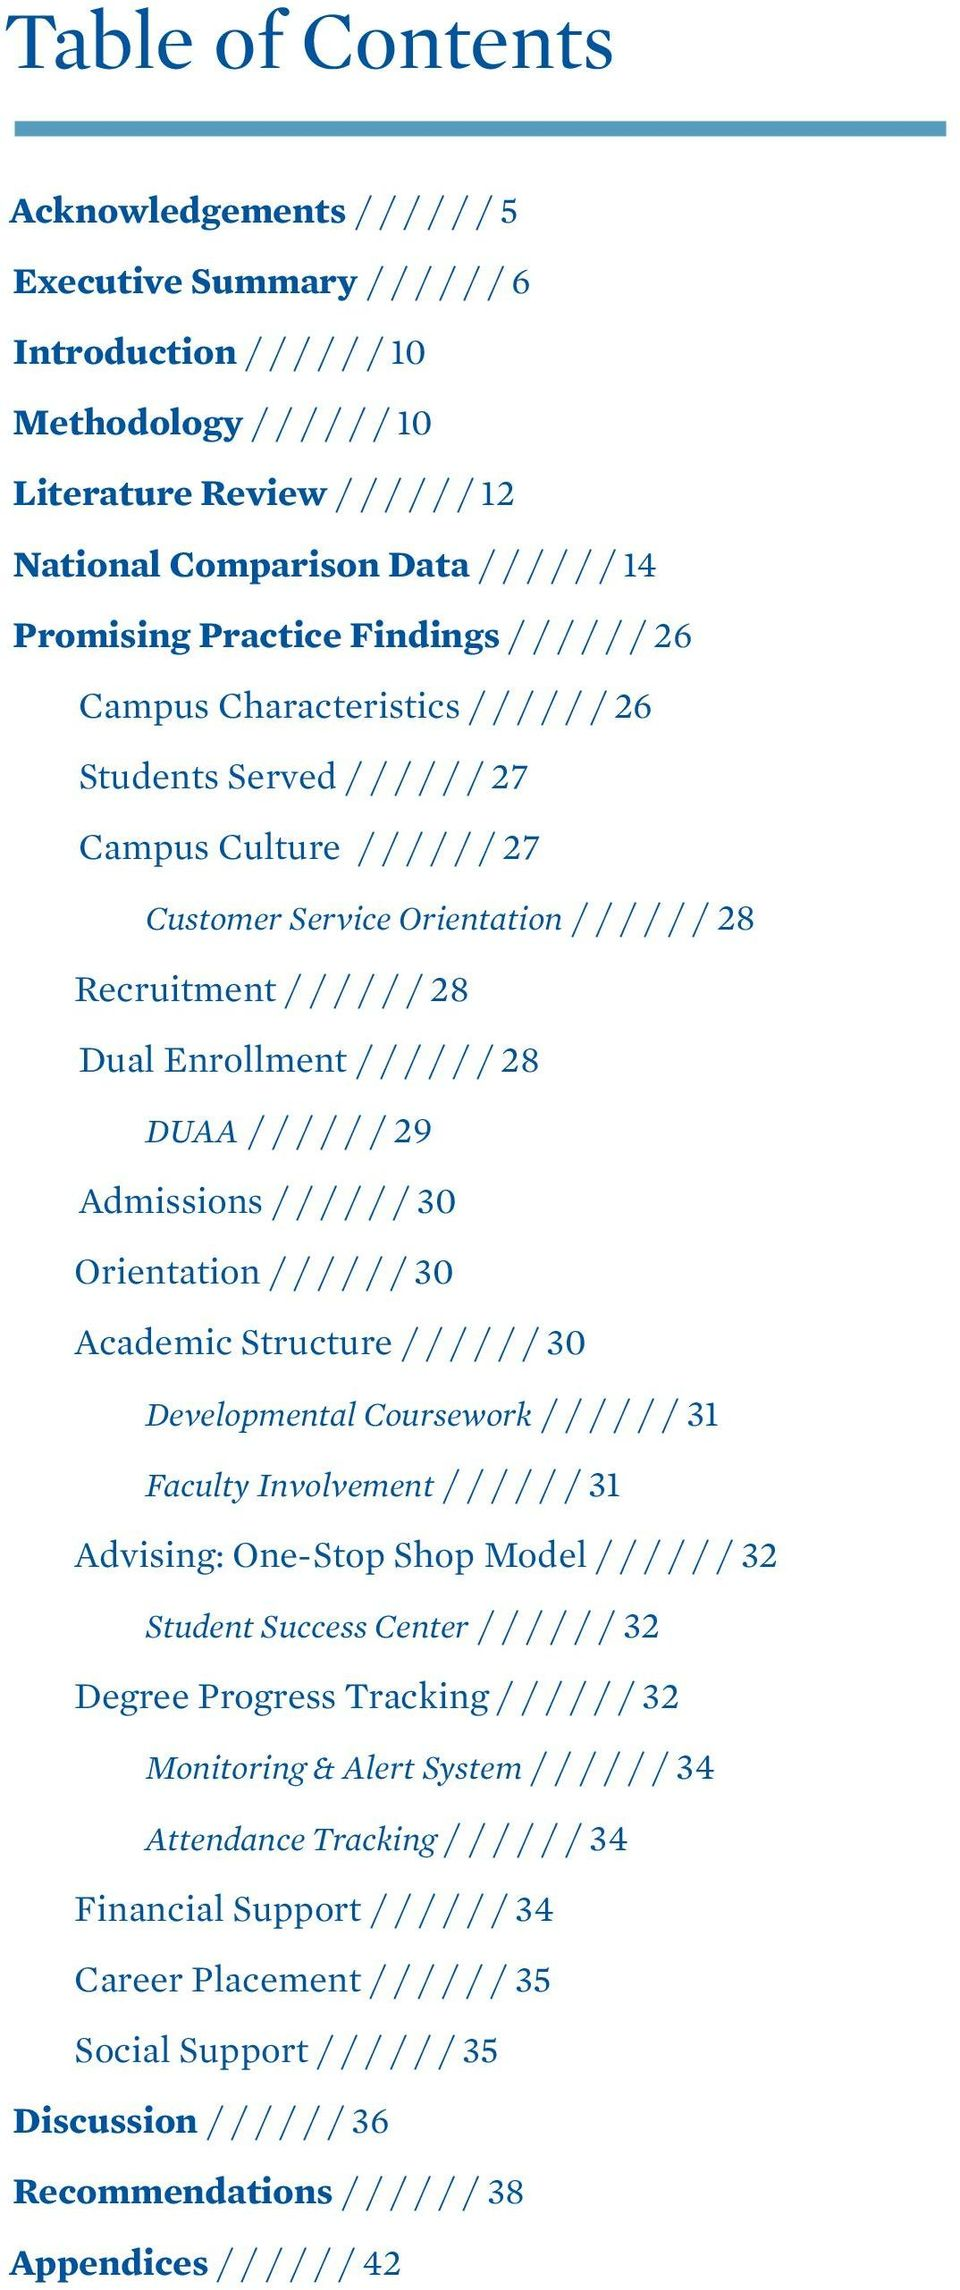 Recruitment / / / / / / 28 Dual Enrollment / / / / / / 28 DUAA / / / / / / 29 Admissions / / / / / / 30 Orientation / / / / / / 30 Academic Structure / / / / / / 30 Developmental Coursework / / / / /